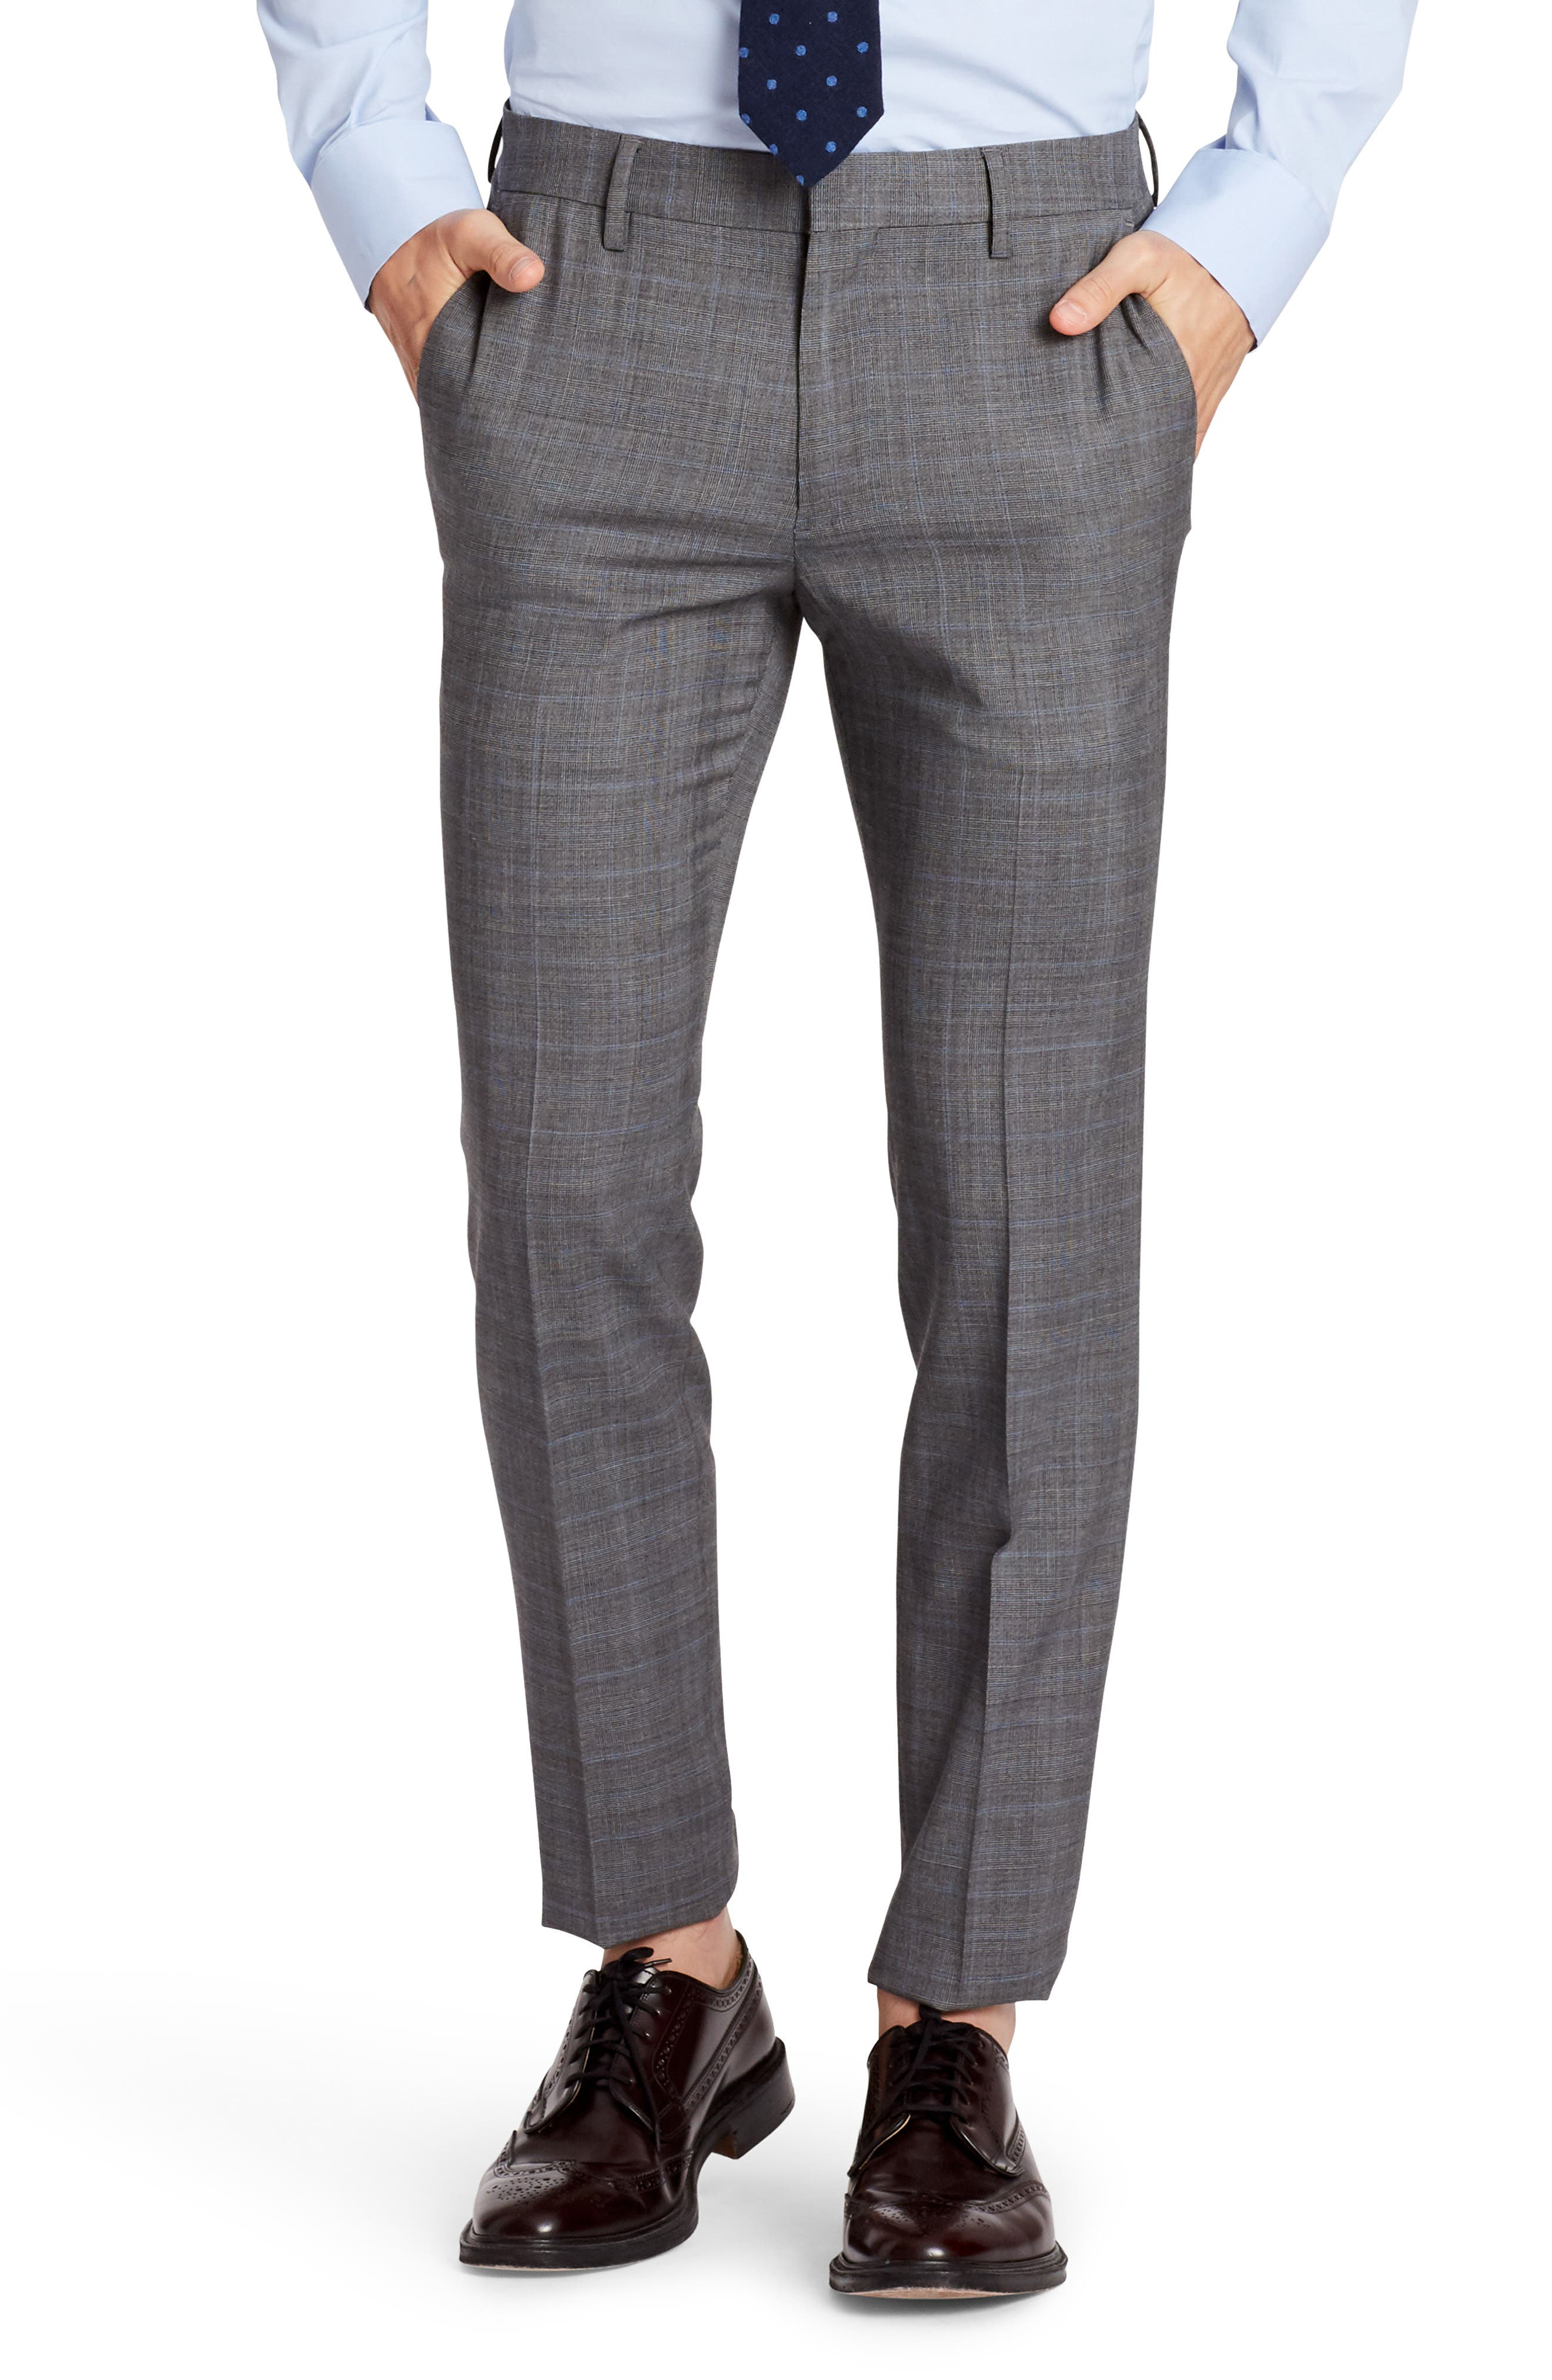 BONOBOS Jetsetter Flat Front Plaid Stretch Wool Trousers, Main, color, 020